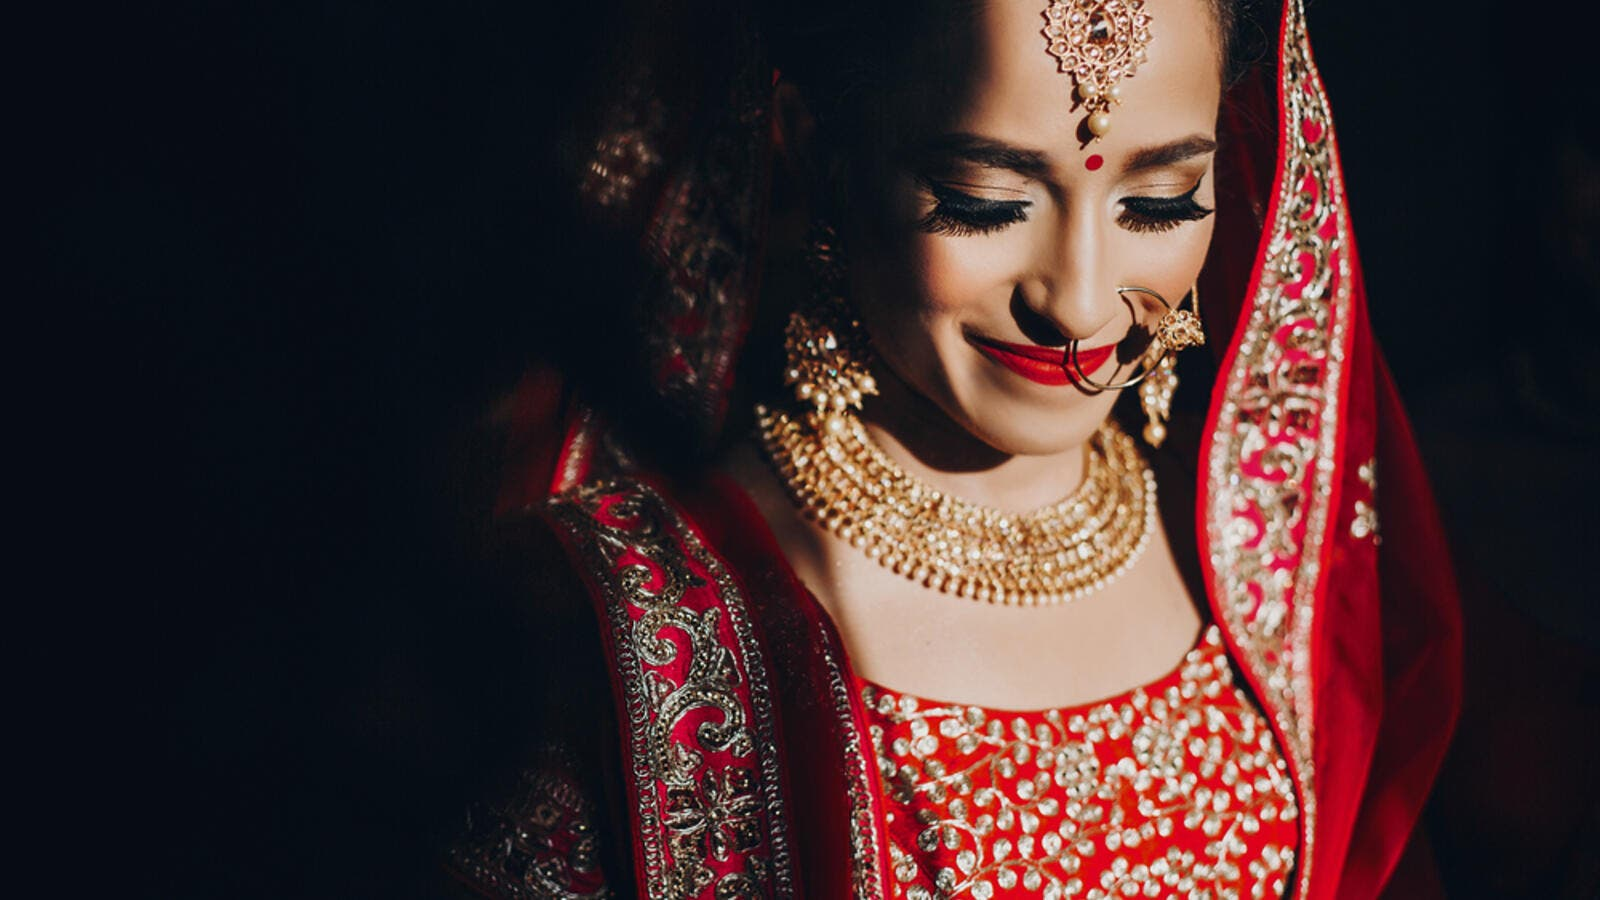 Indian bride (Shutterstock/File Photo)